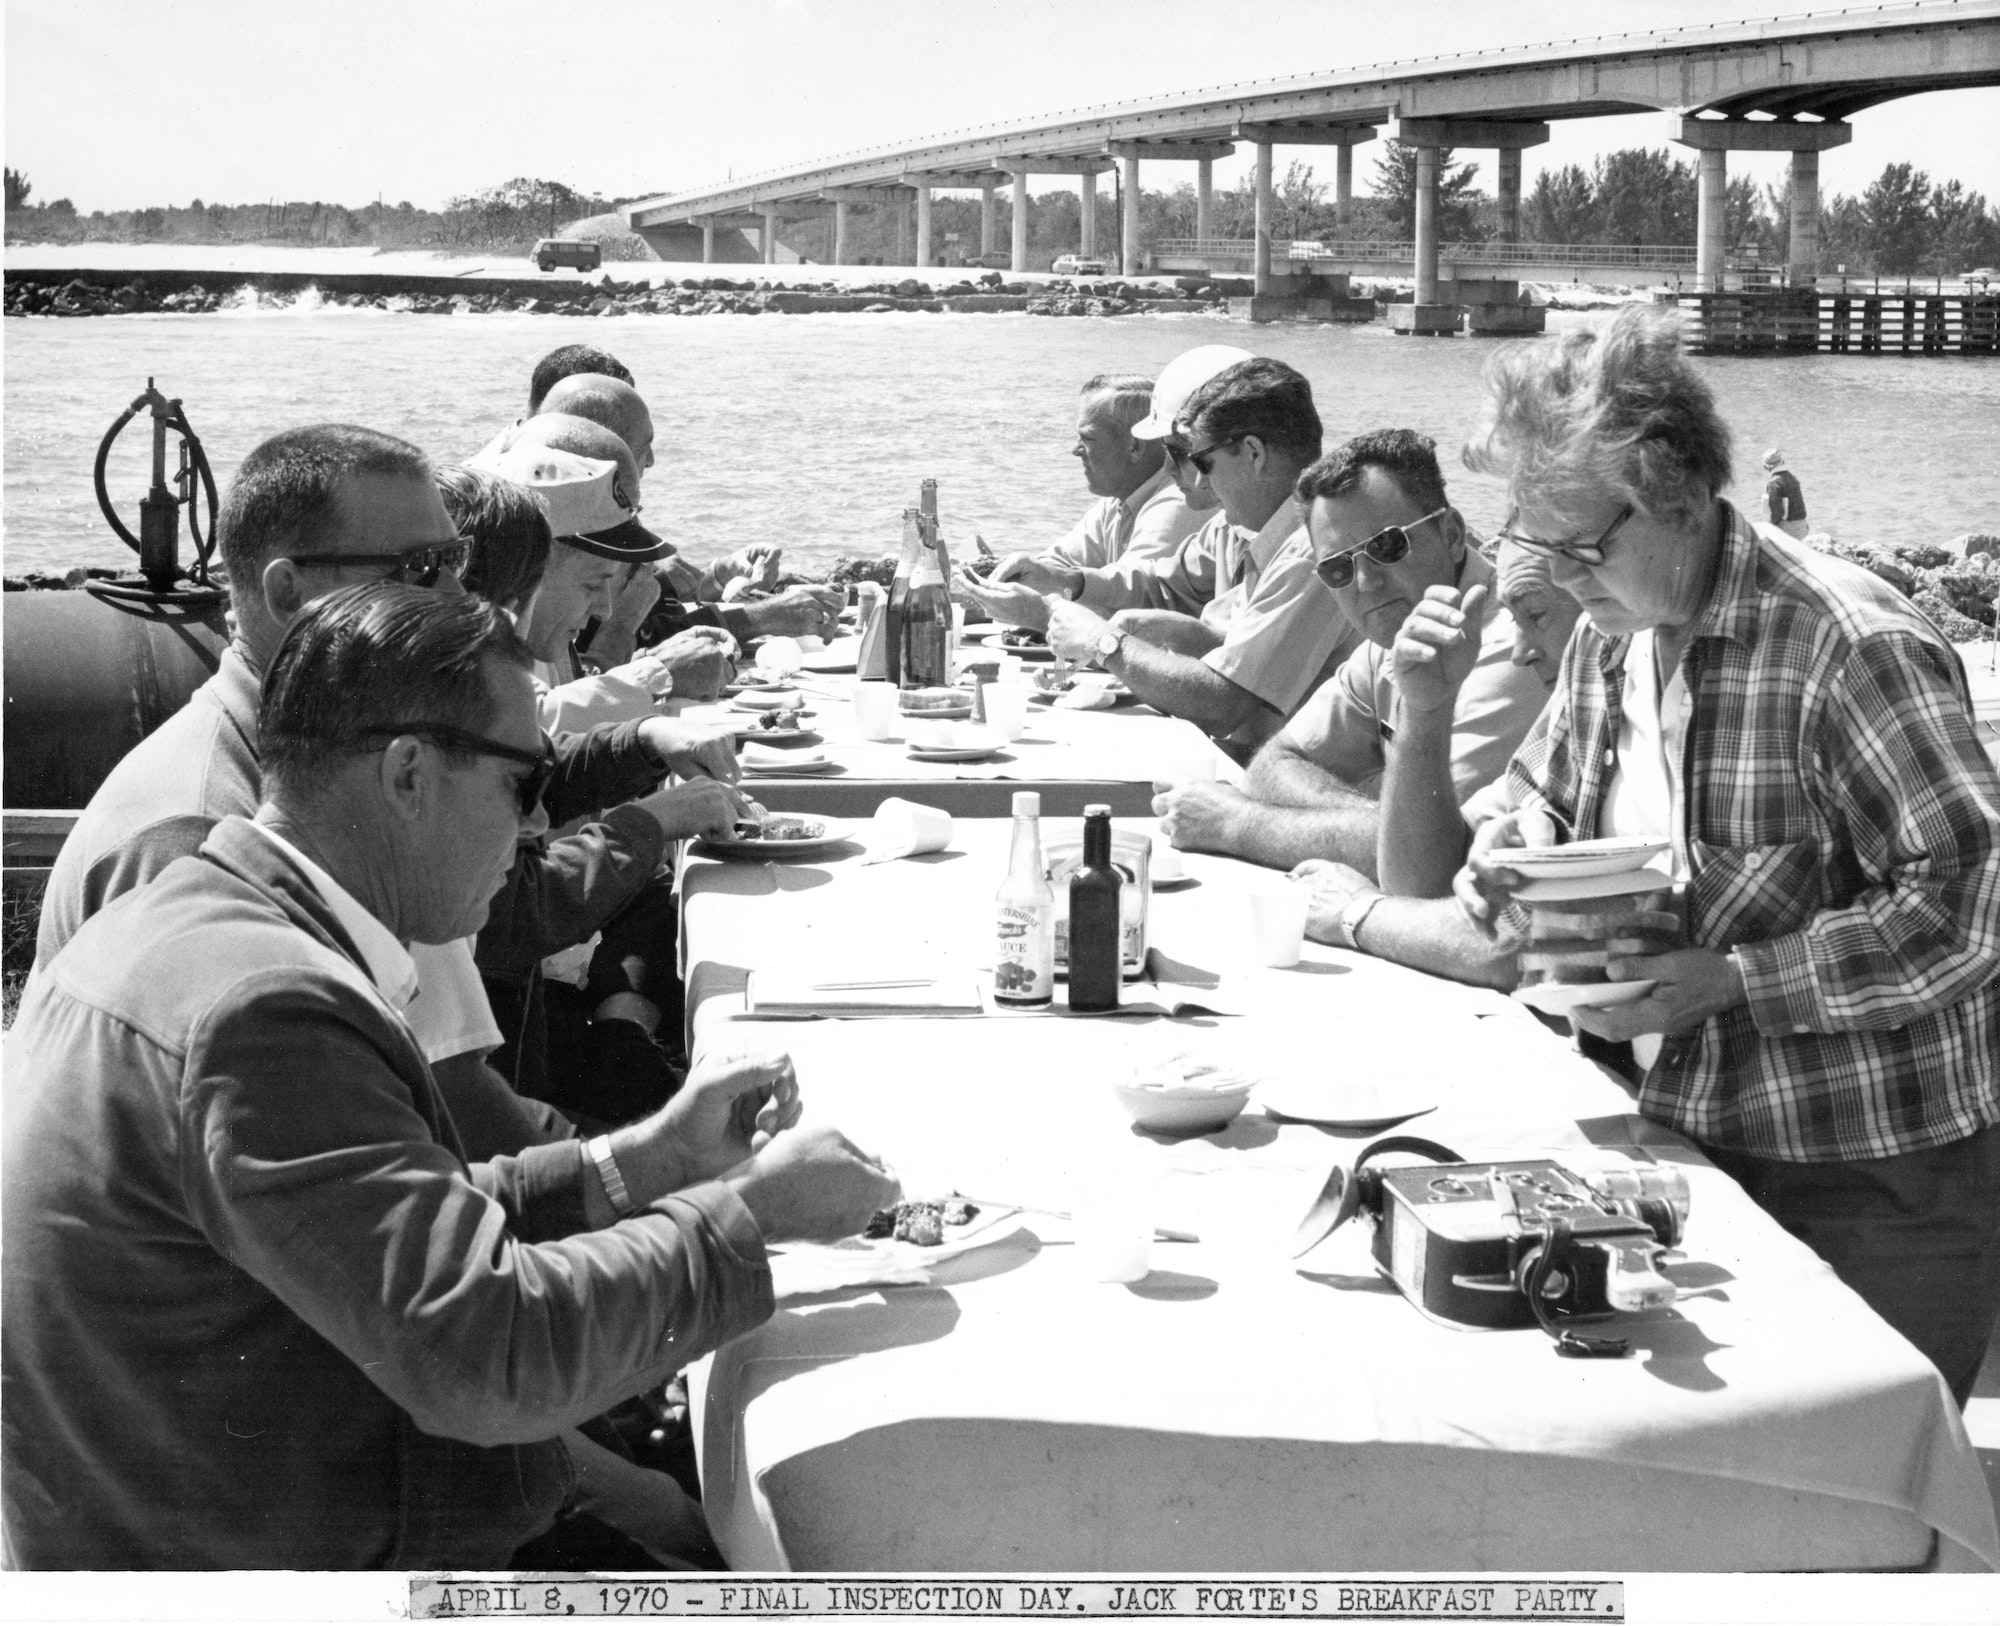 people gathered at a table for a meal with Sebastian Inlet bridge in background